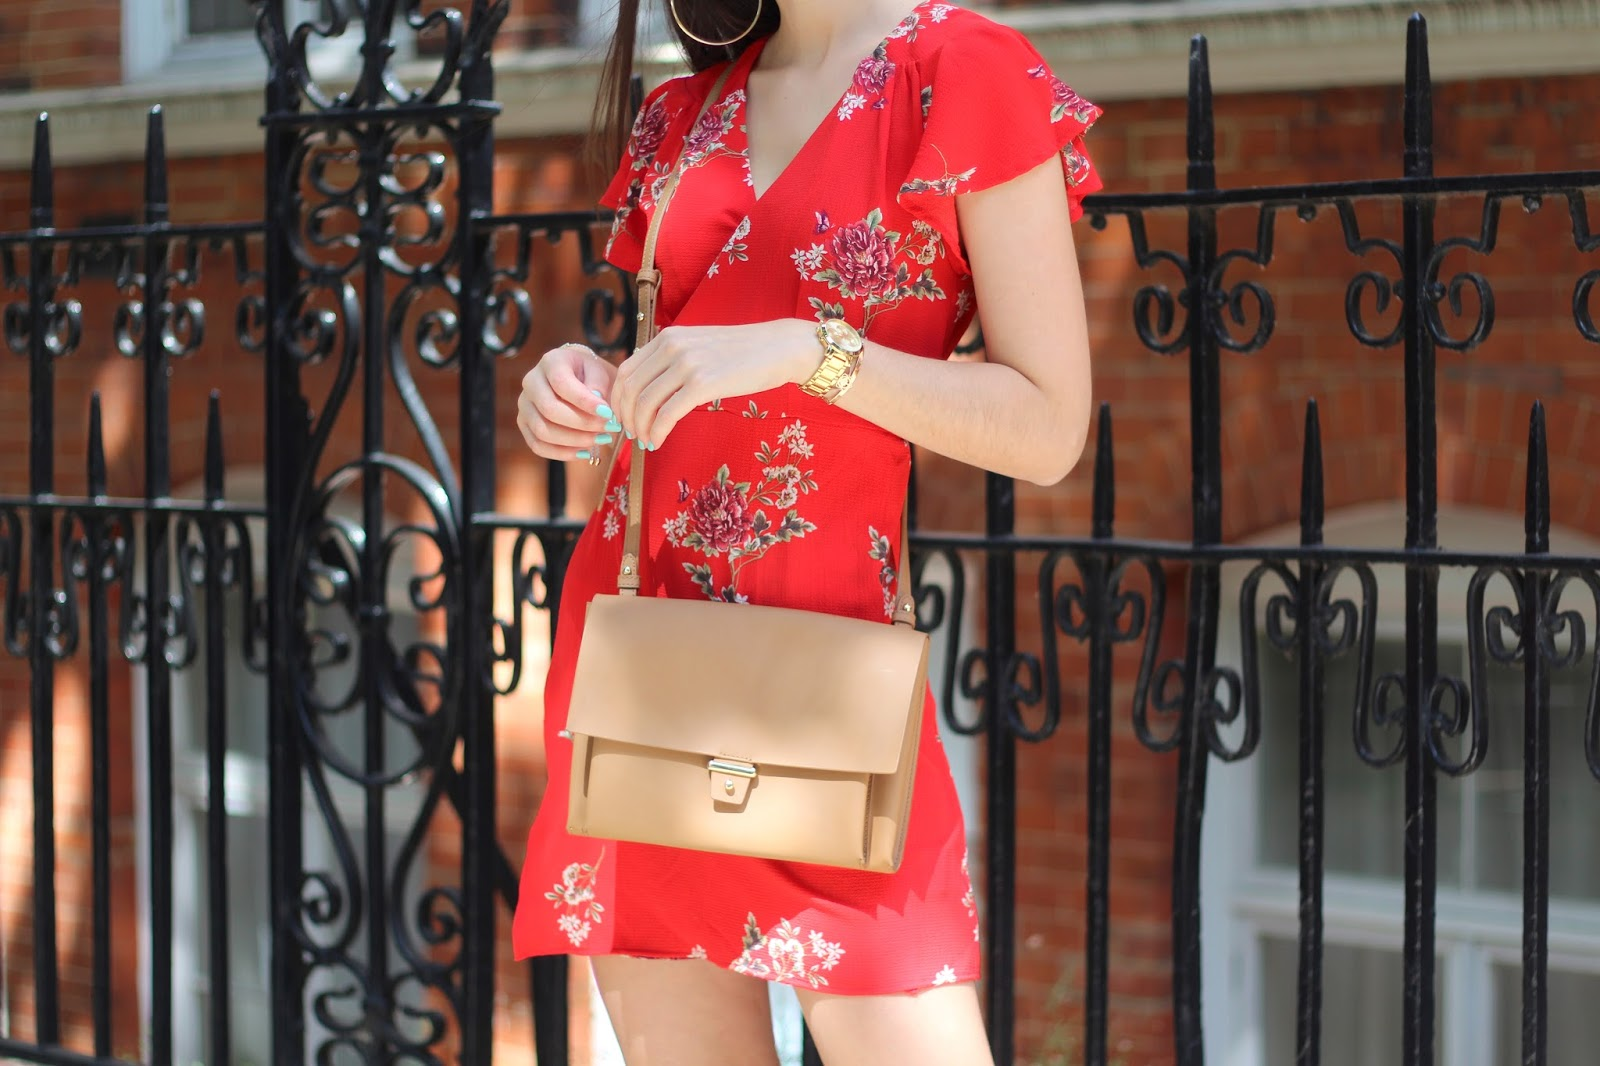 peexo fashion blogger buying a red dress summer